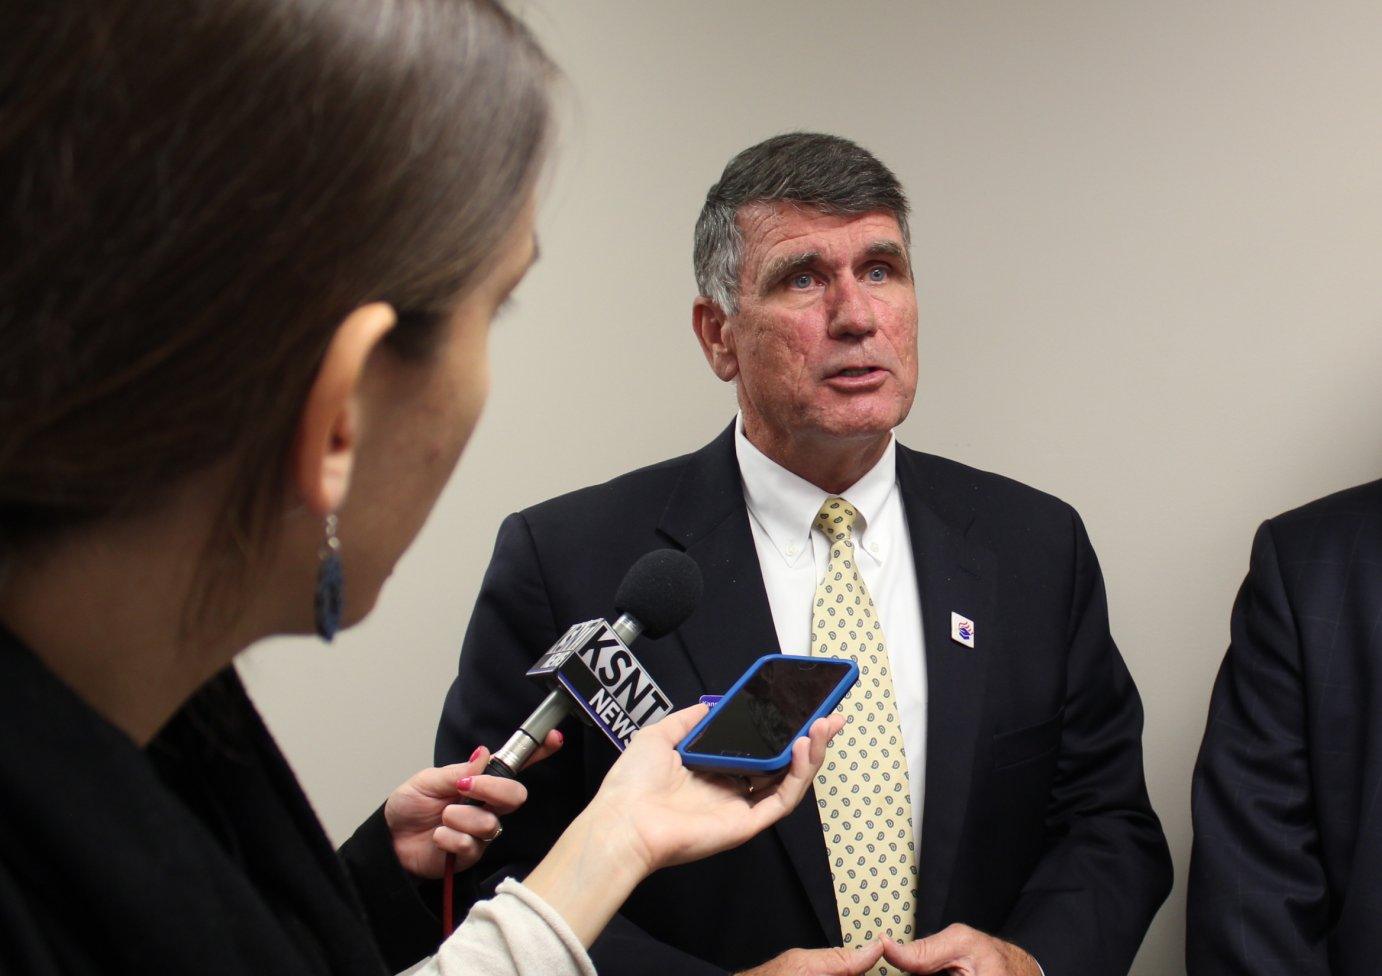 Board of Education Chairman Jim McNiece speaking to reporters. (Photo by Stephen Koranda)